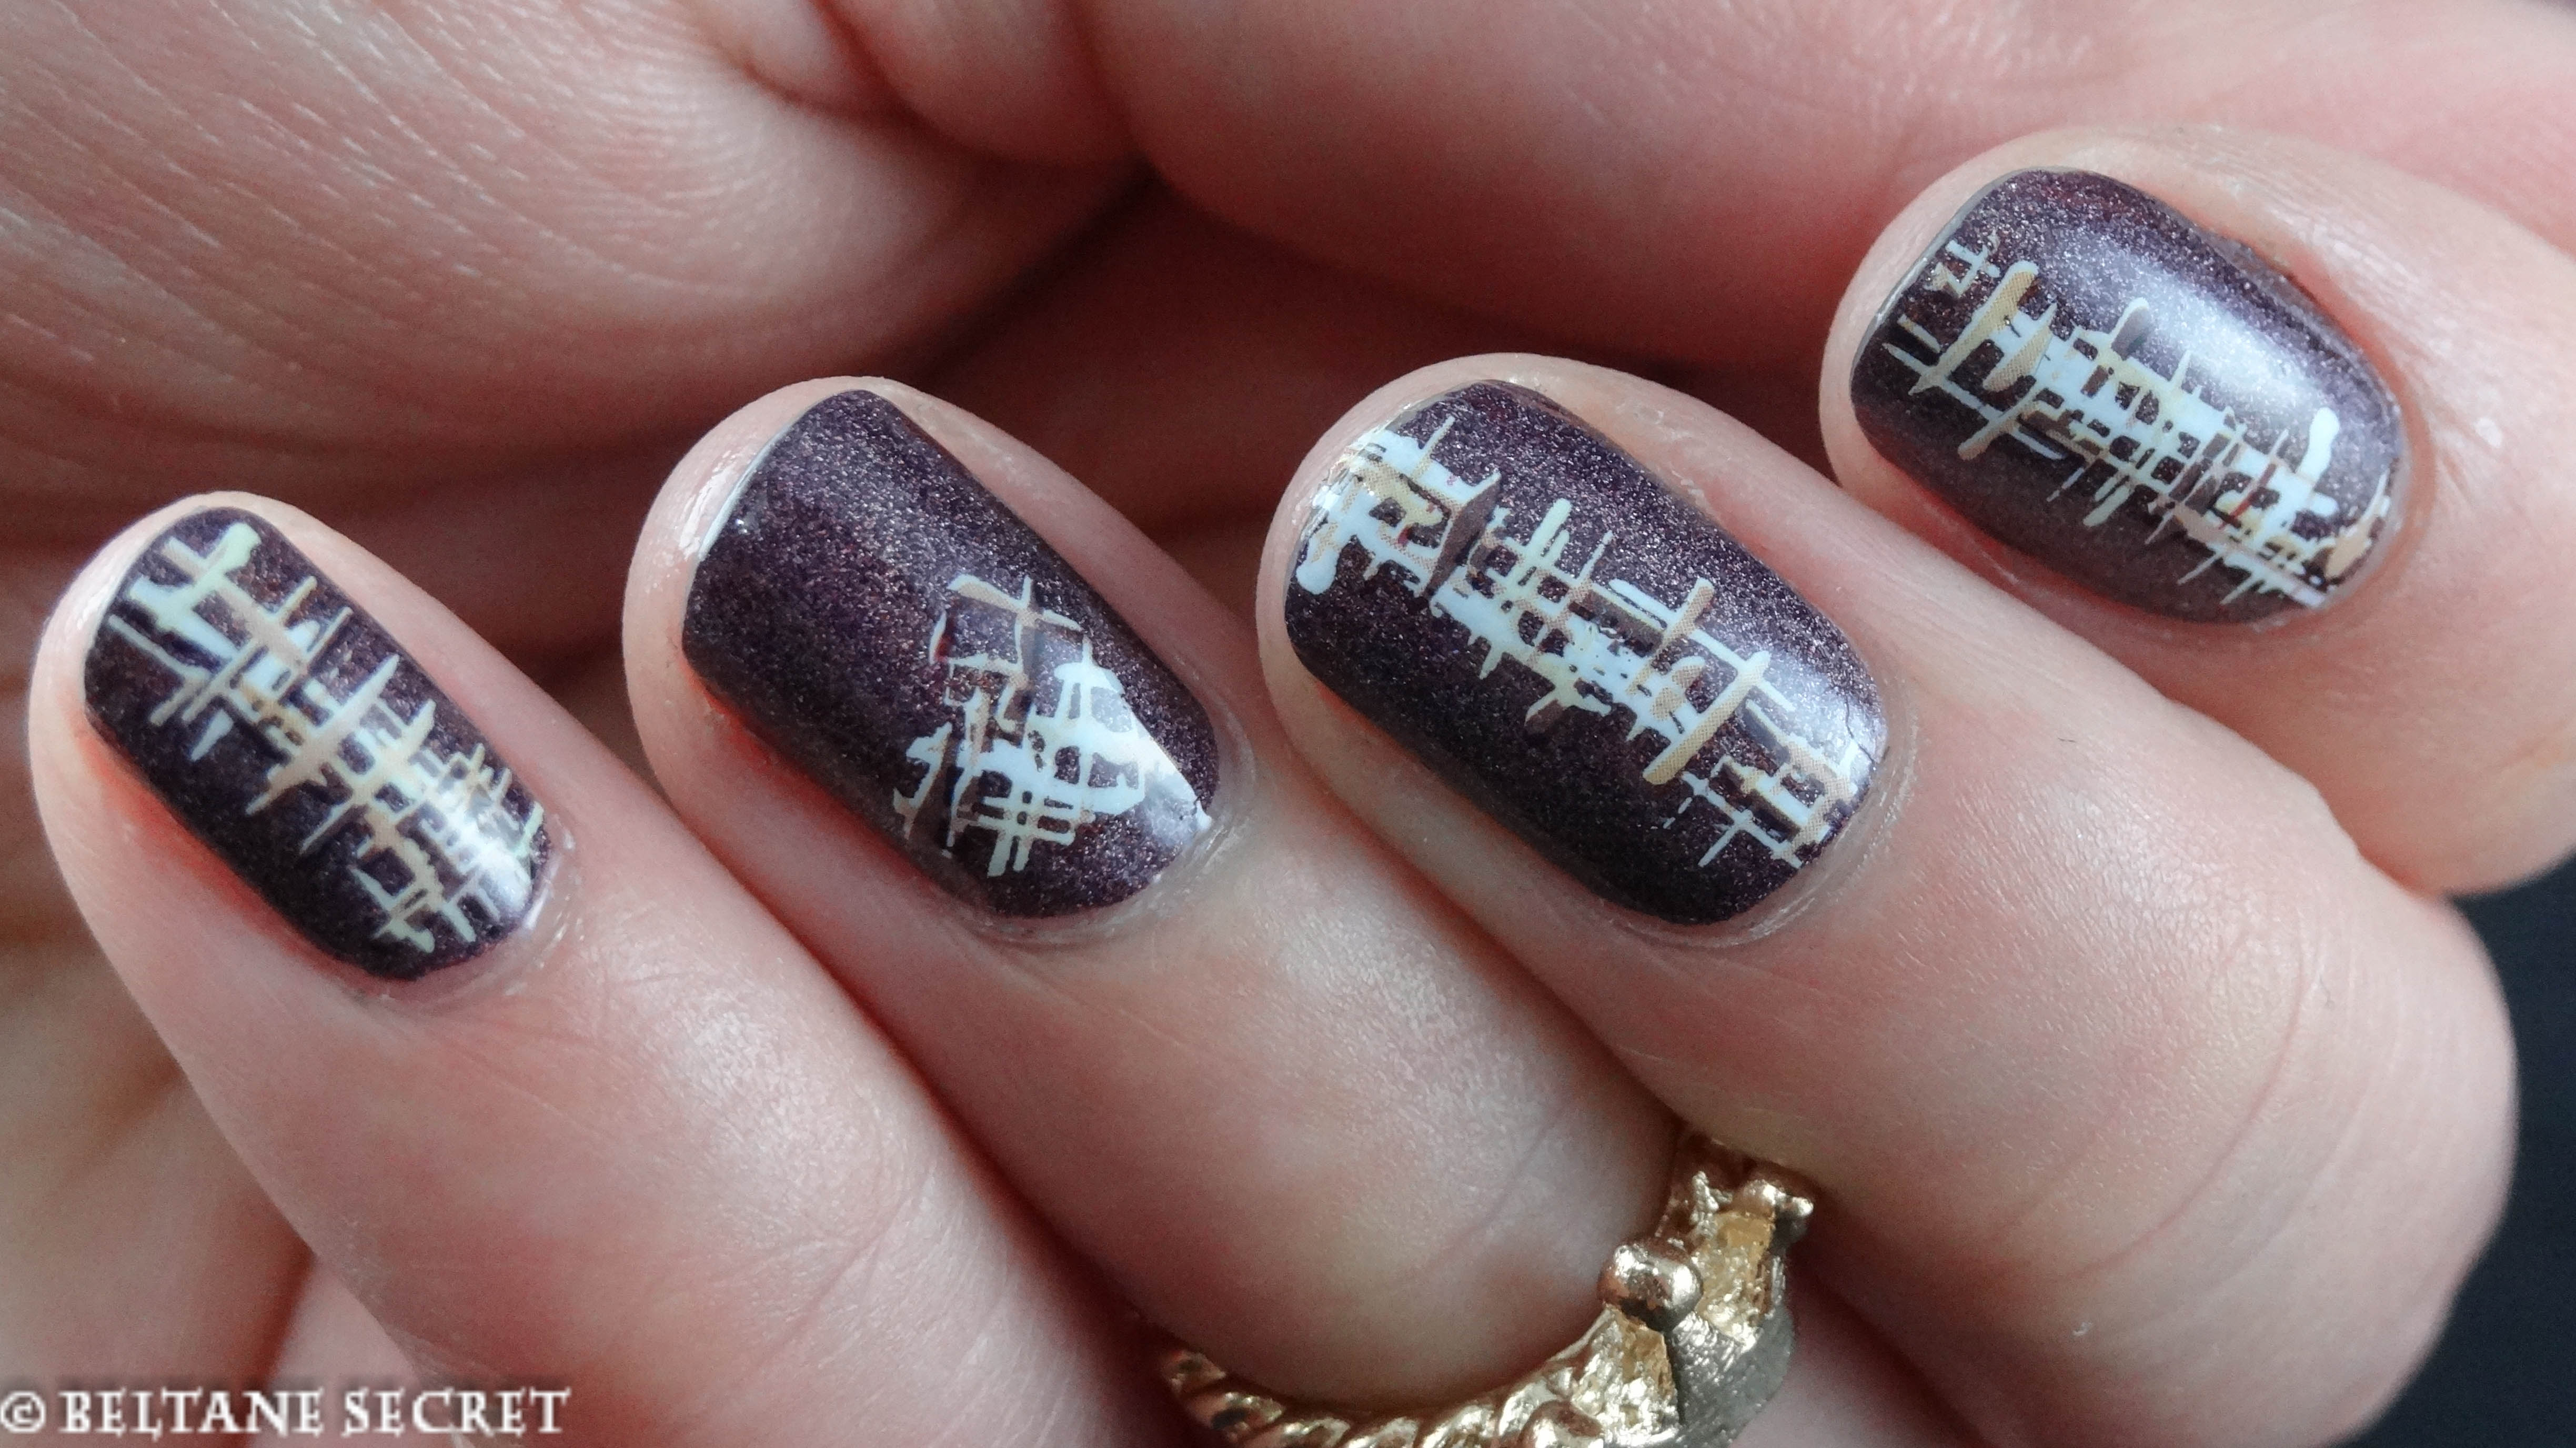 Sleeping Palace A England BornPrettyStore water decals DLS-109